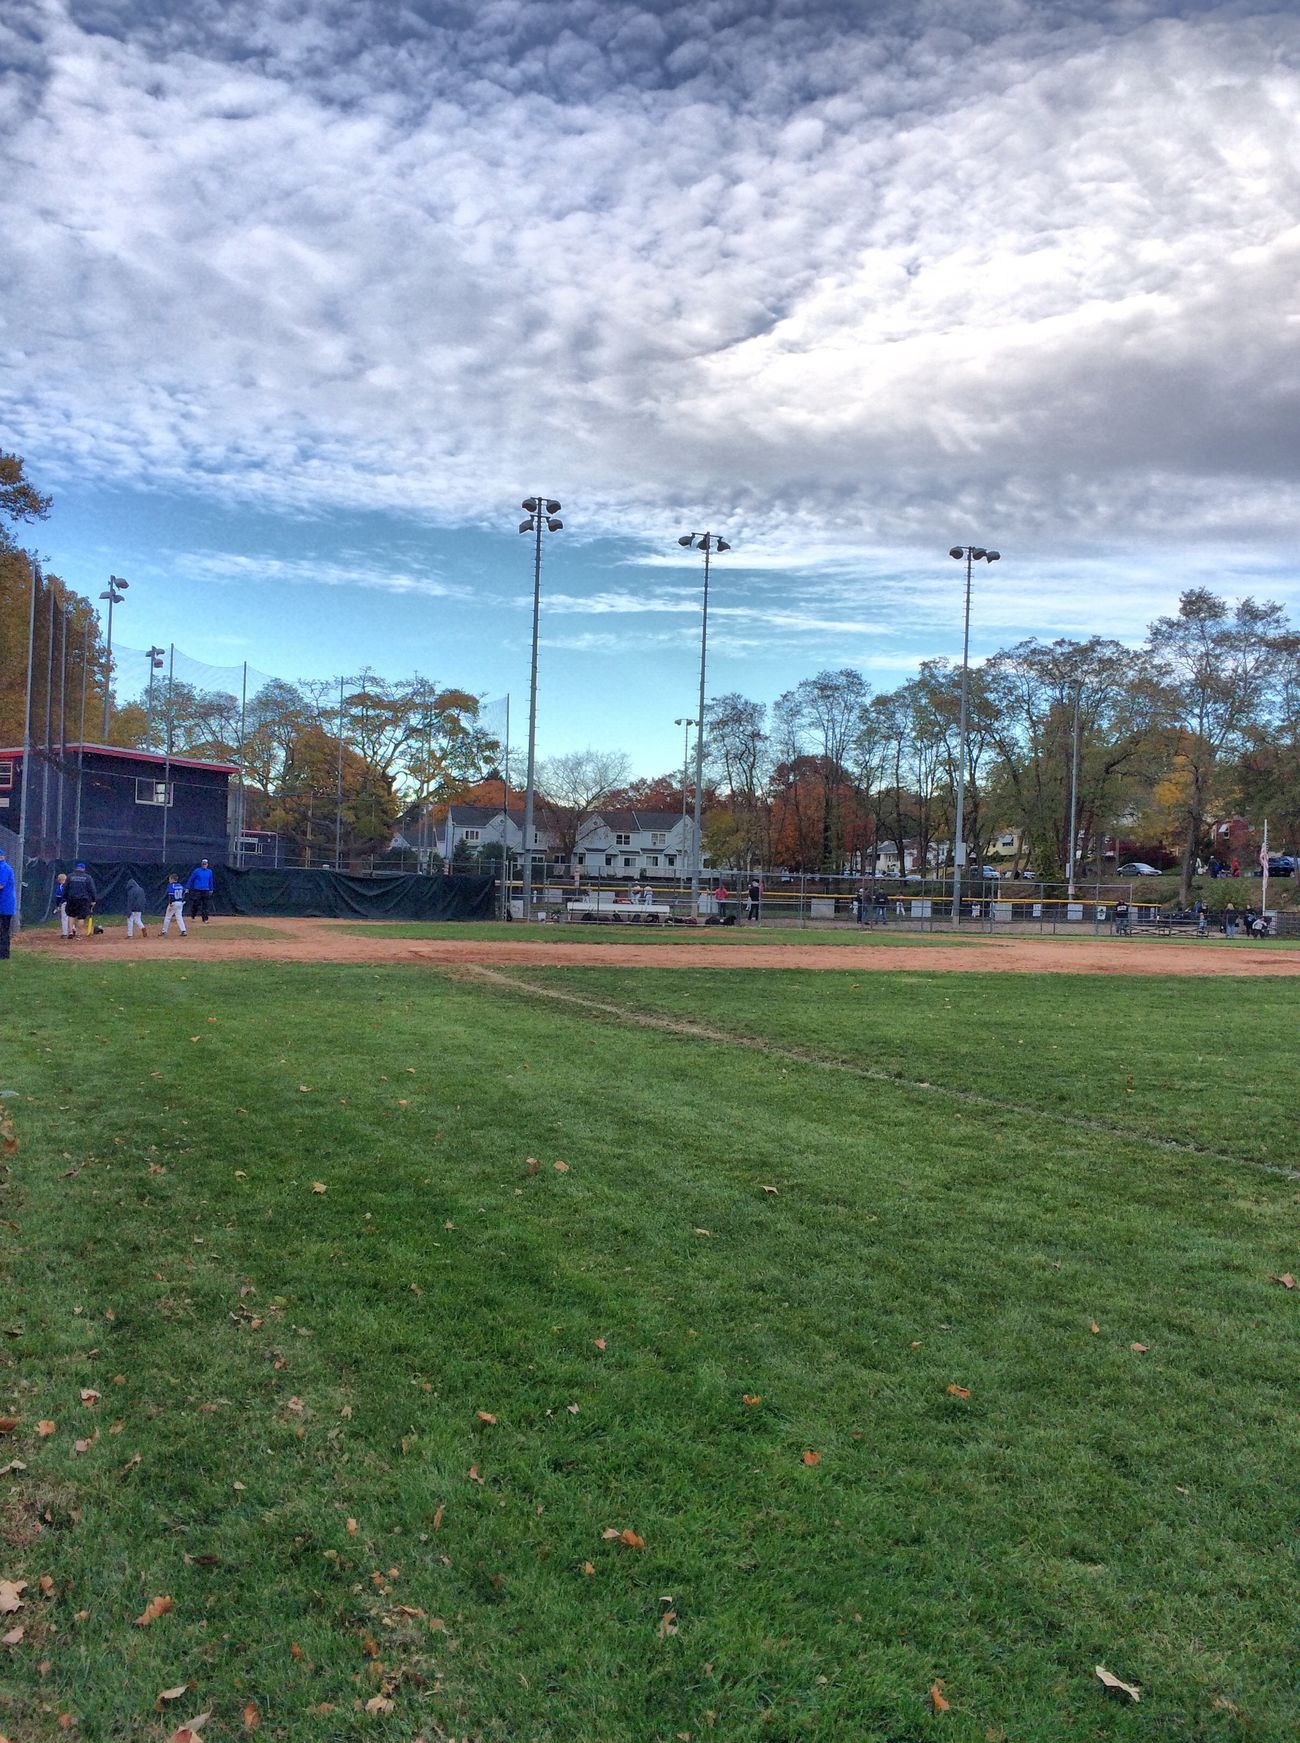 ✨⚾️😌Season's End😊⚾️✨ The final frame recorded...a brisk late October breeze quietly carrying away the memories of The Game. Getting Inspired Tadaa Community Baseball October Autumn Clouds And Sky